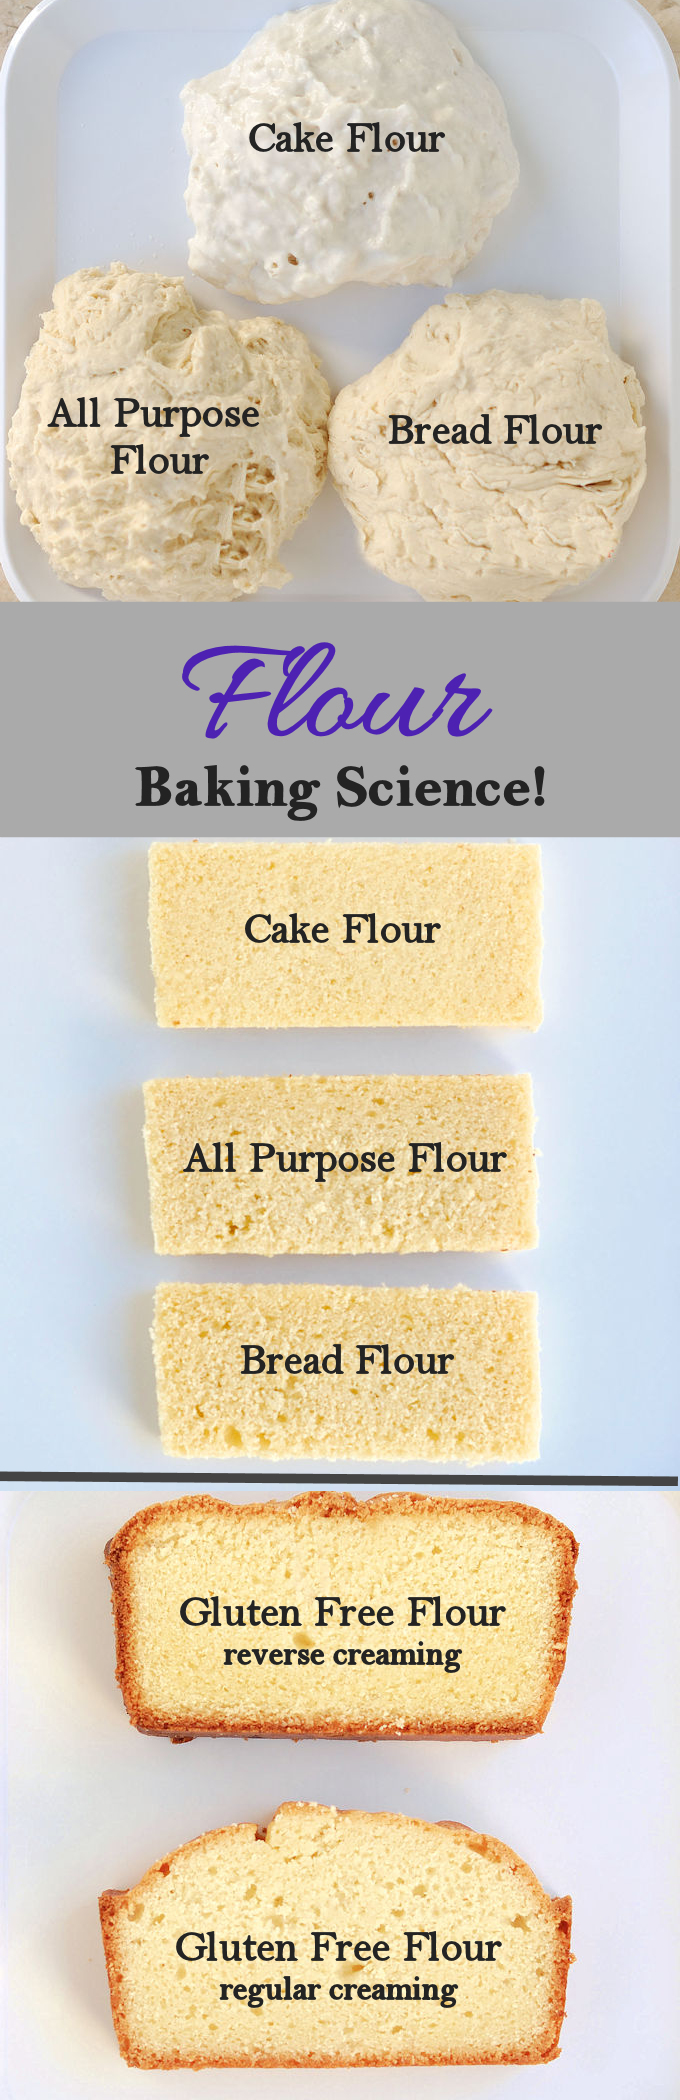 Gluten Free Cake Flour Ingredients